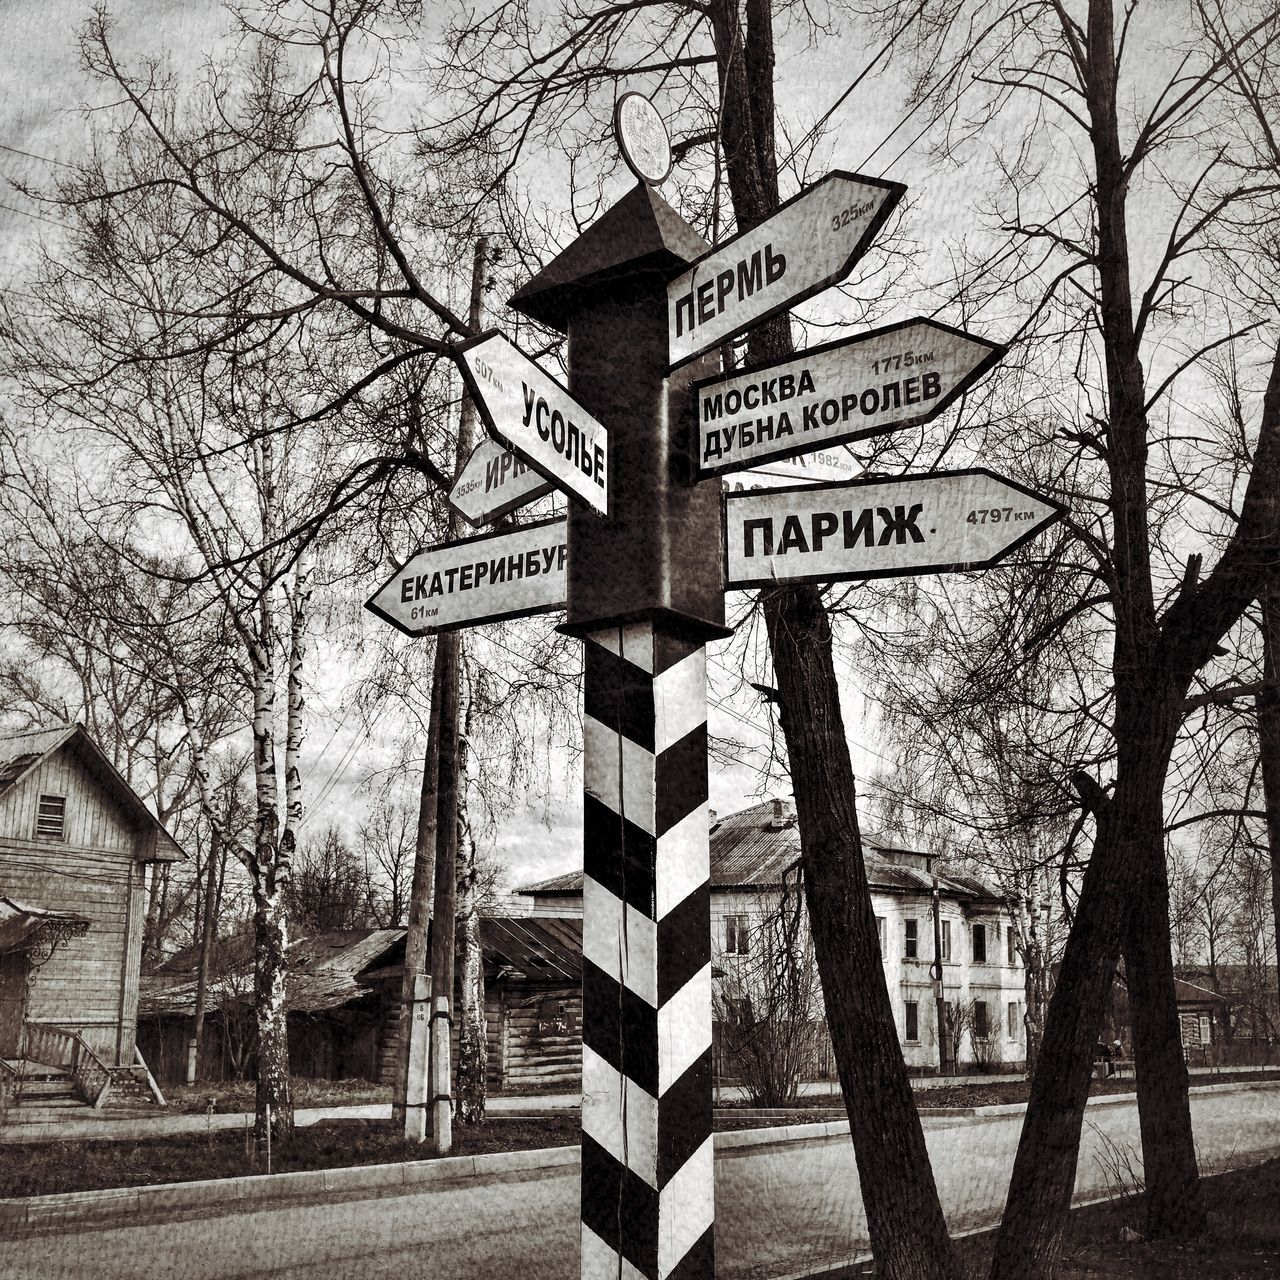 bare tree, tree, text, communication, guidance, day, no people, outdoors, architecture, built structure, road sign, building exterior, sky, close-up